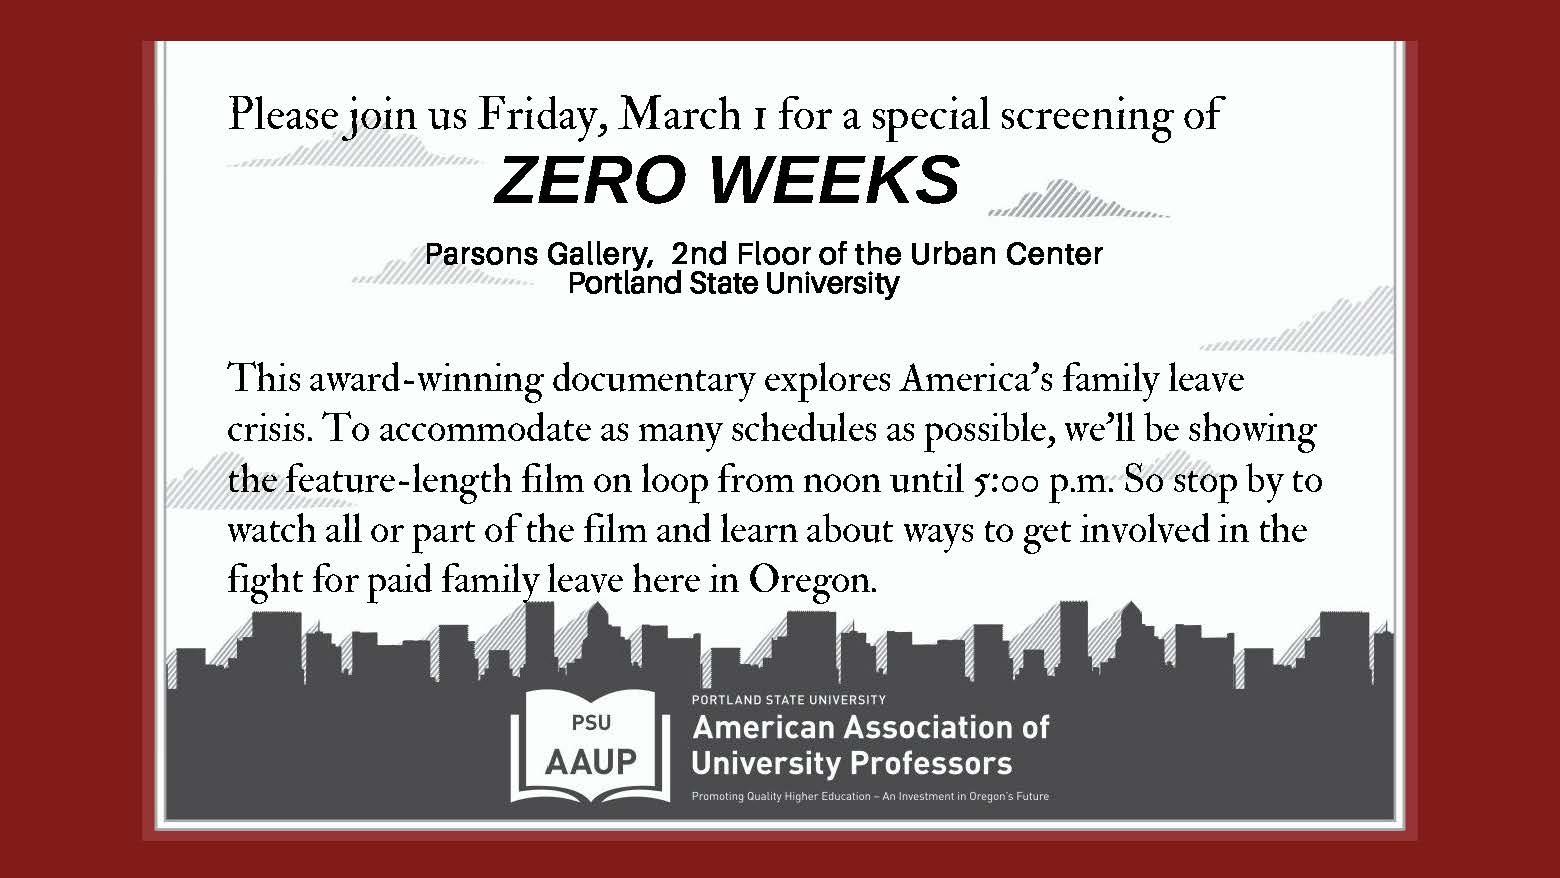 Special Screening of Zero Weeks